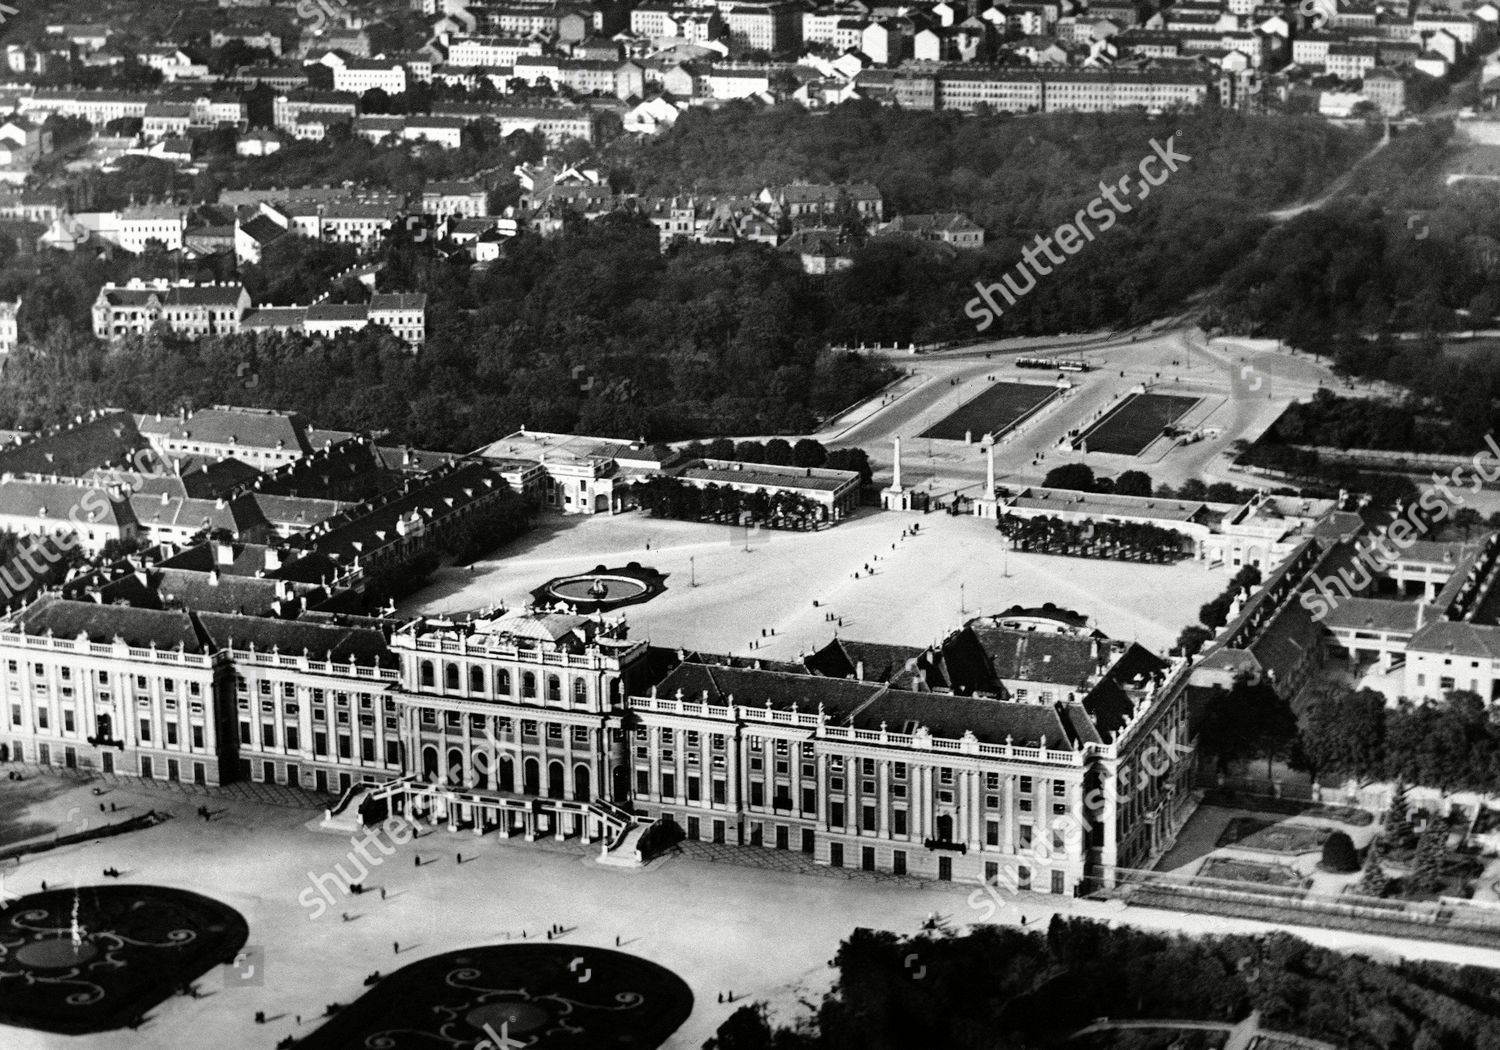 Stock photo of Austria Vienna Schoenbrunn Palace, Vienna, Austria